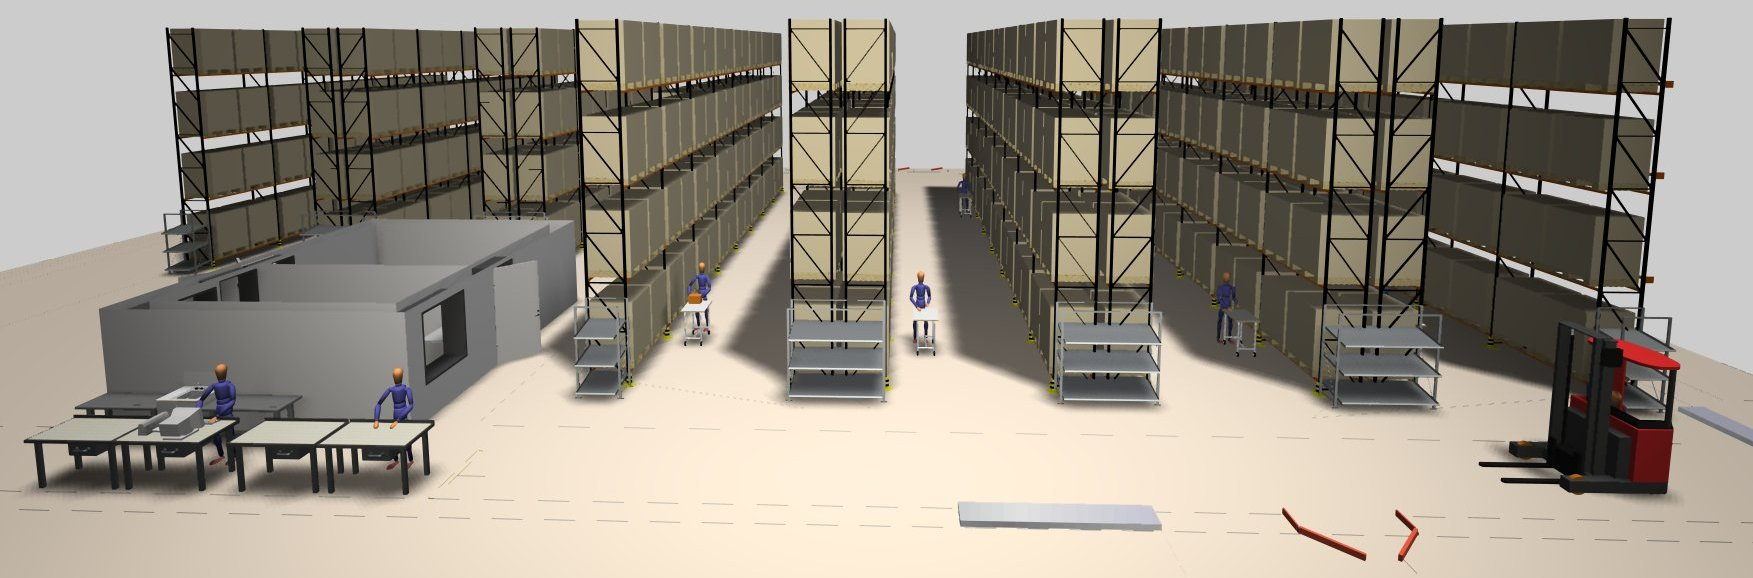 Science behind warehouse design and start up hesol for Warehouse plans designs